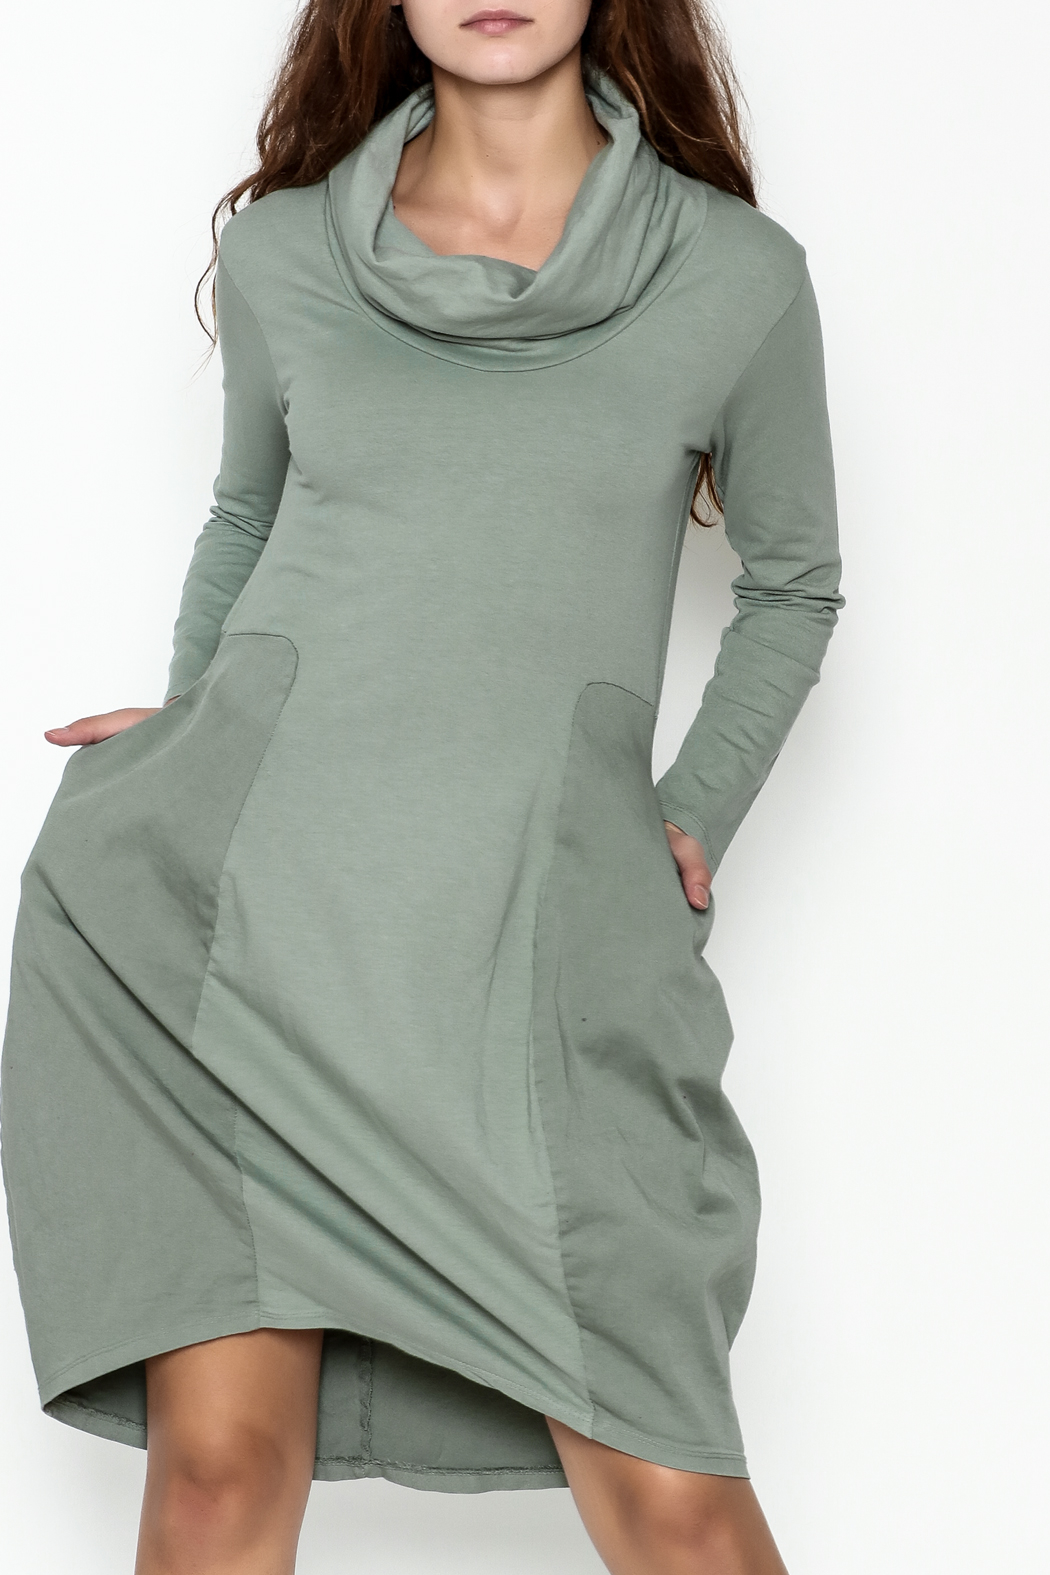 Baci Cowl Neck Dress - Main Image